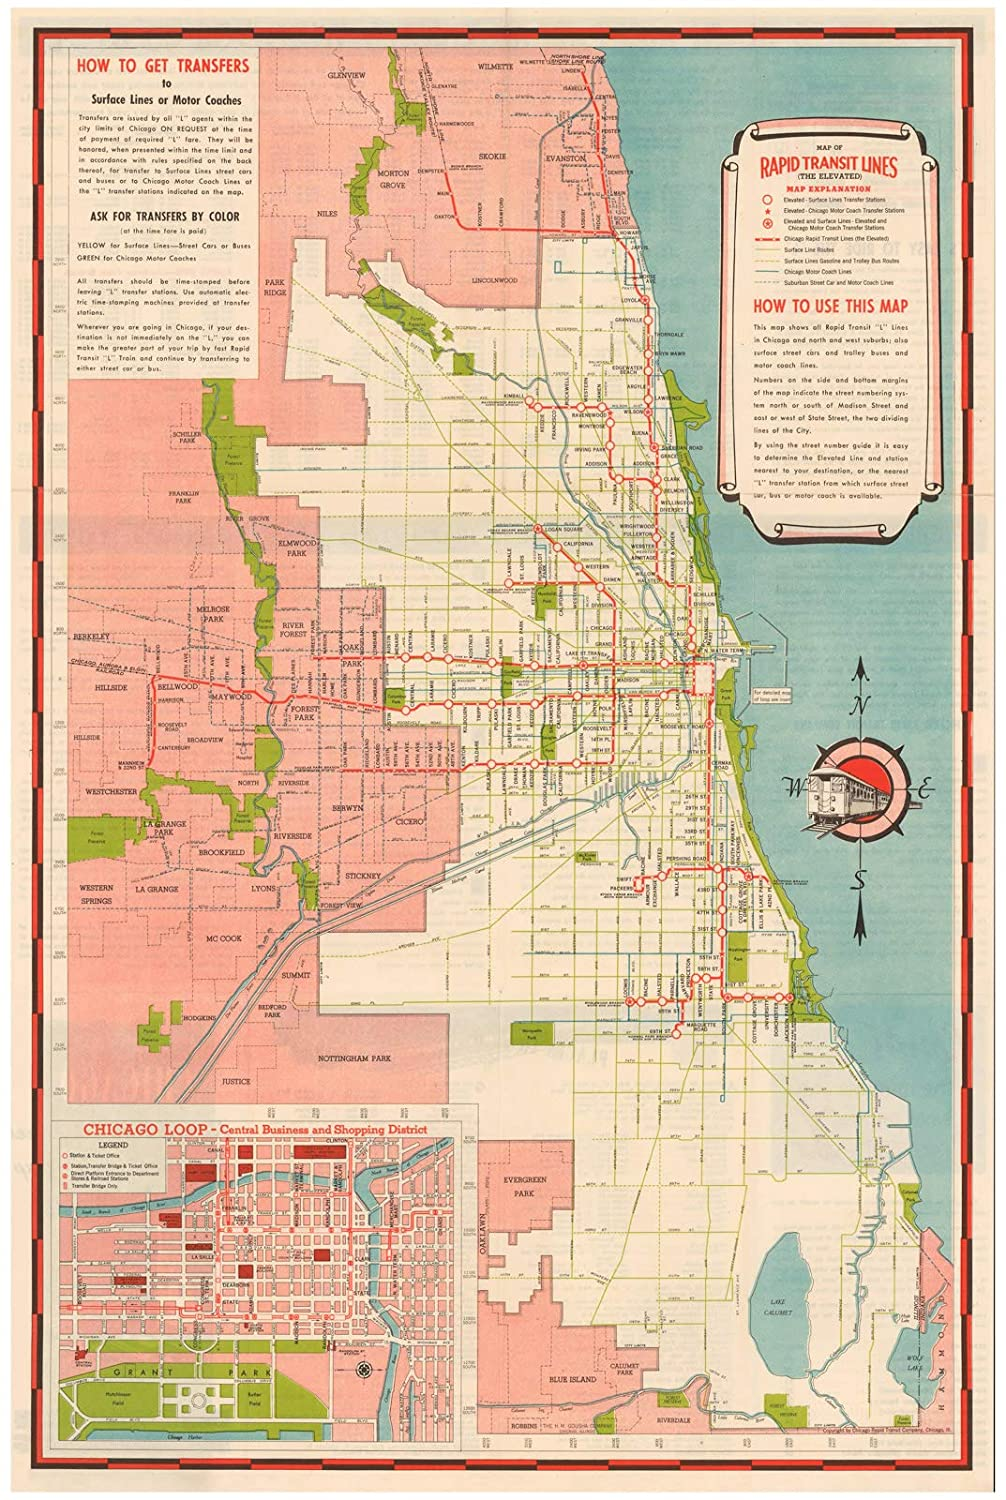 Amazon.com: Chicago Transit Maps, Chicago Rapid Transit Lines 1941 on